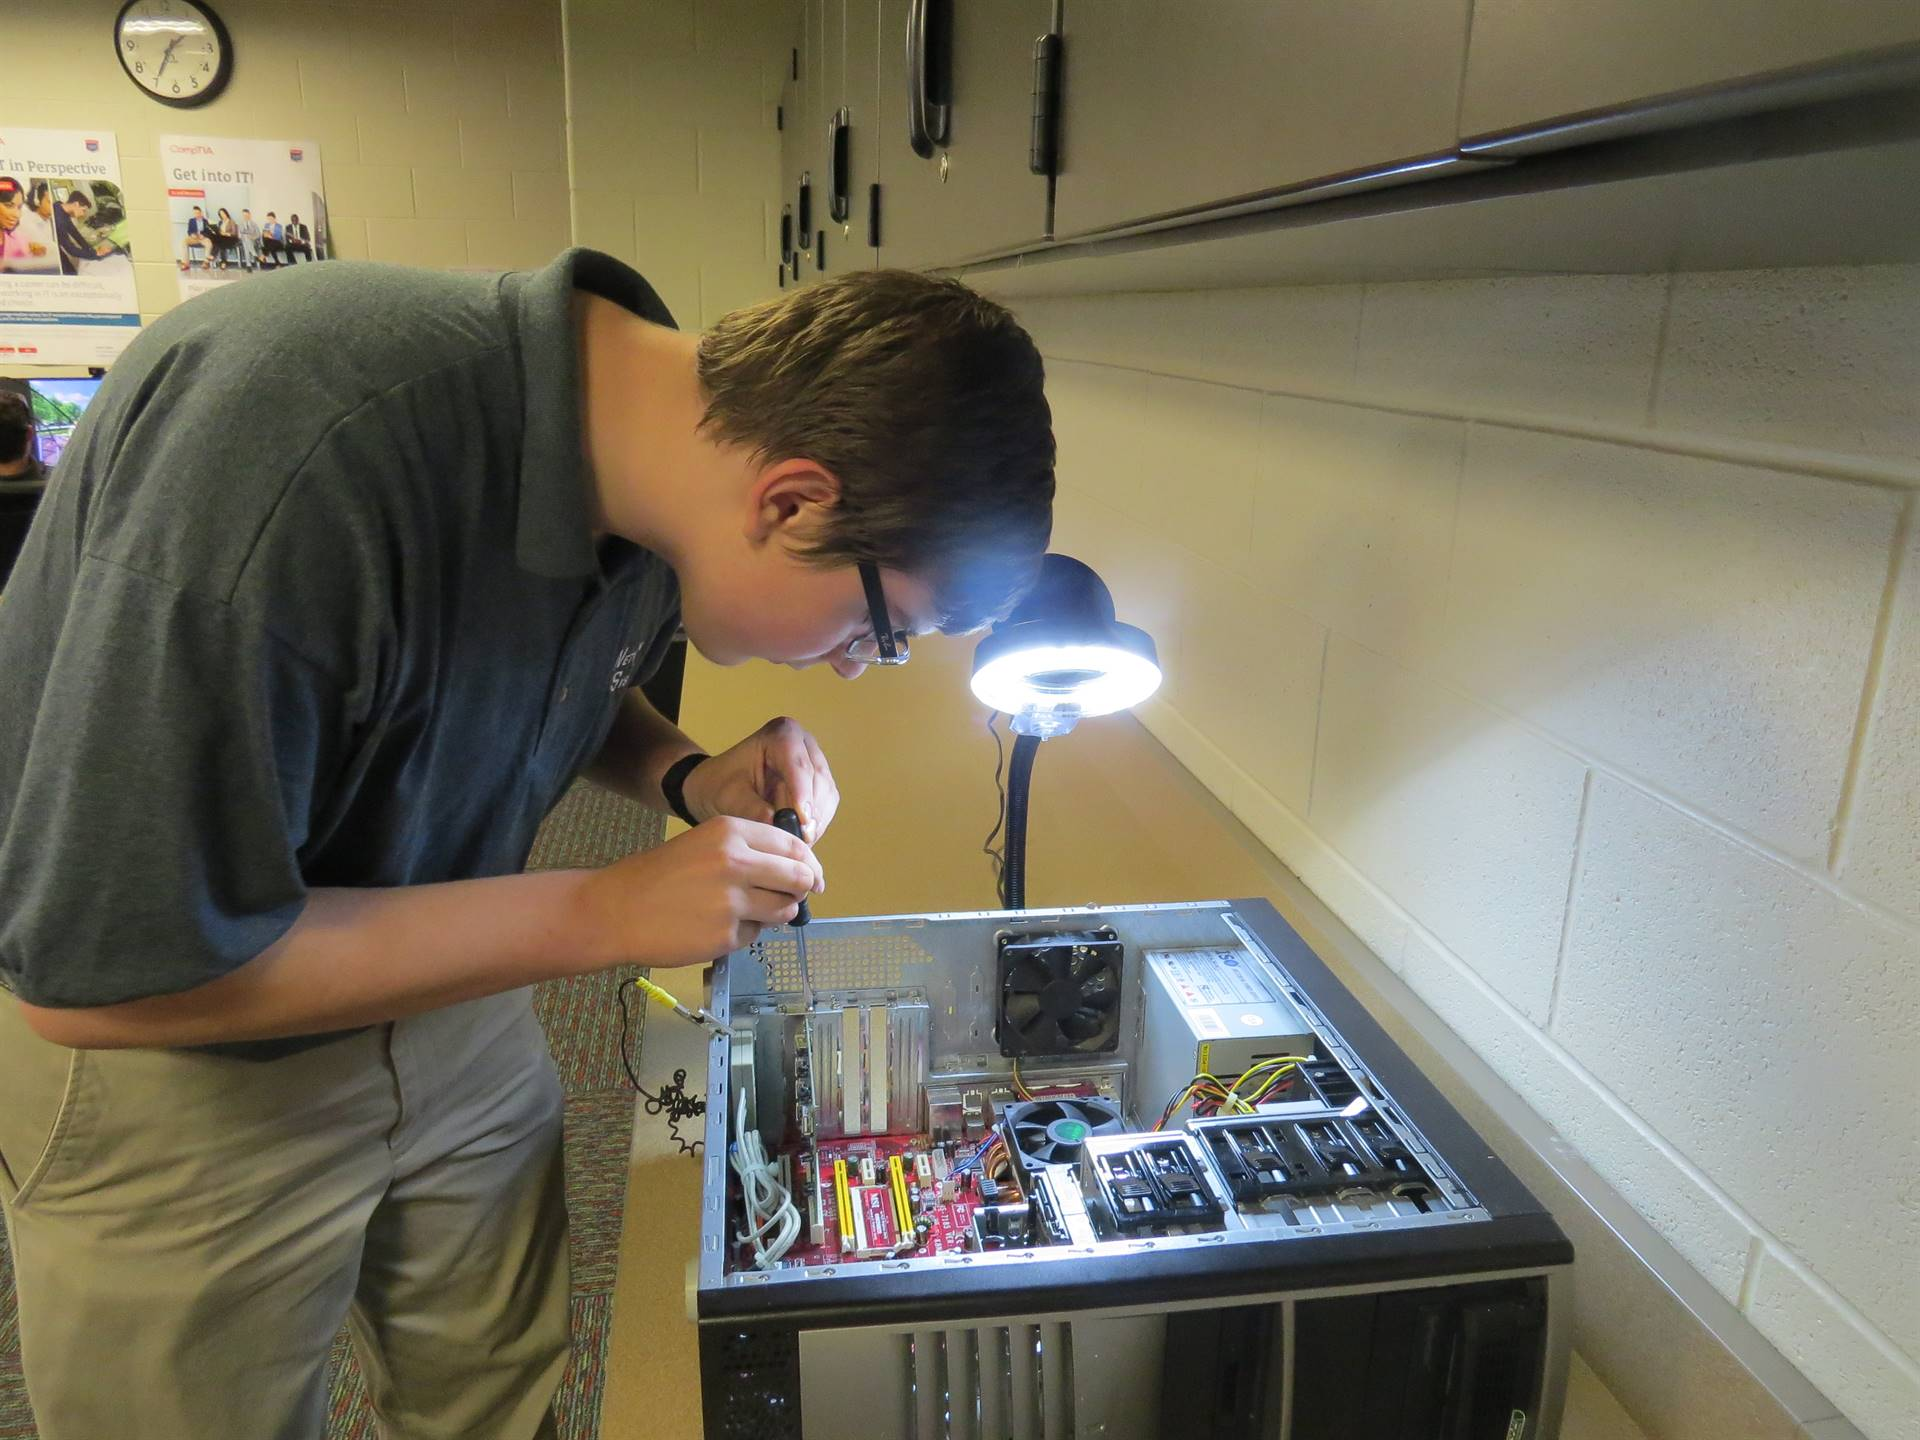 Male student repairing internal components of a computer